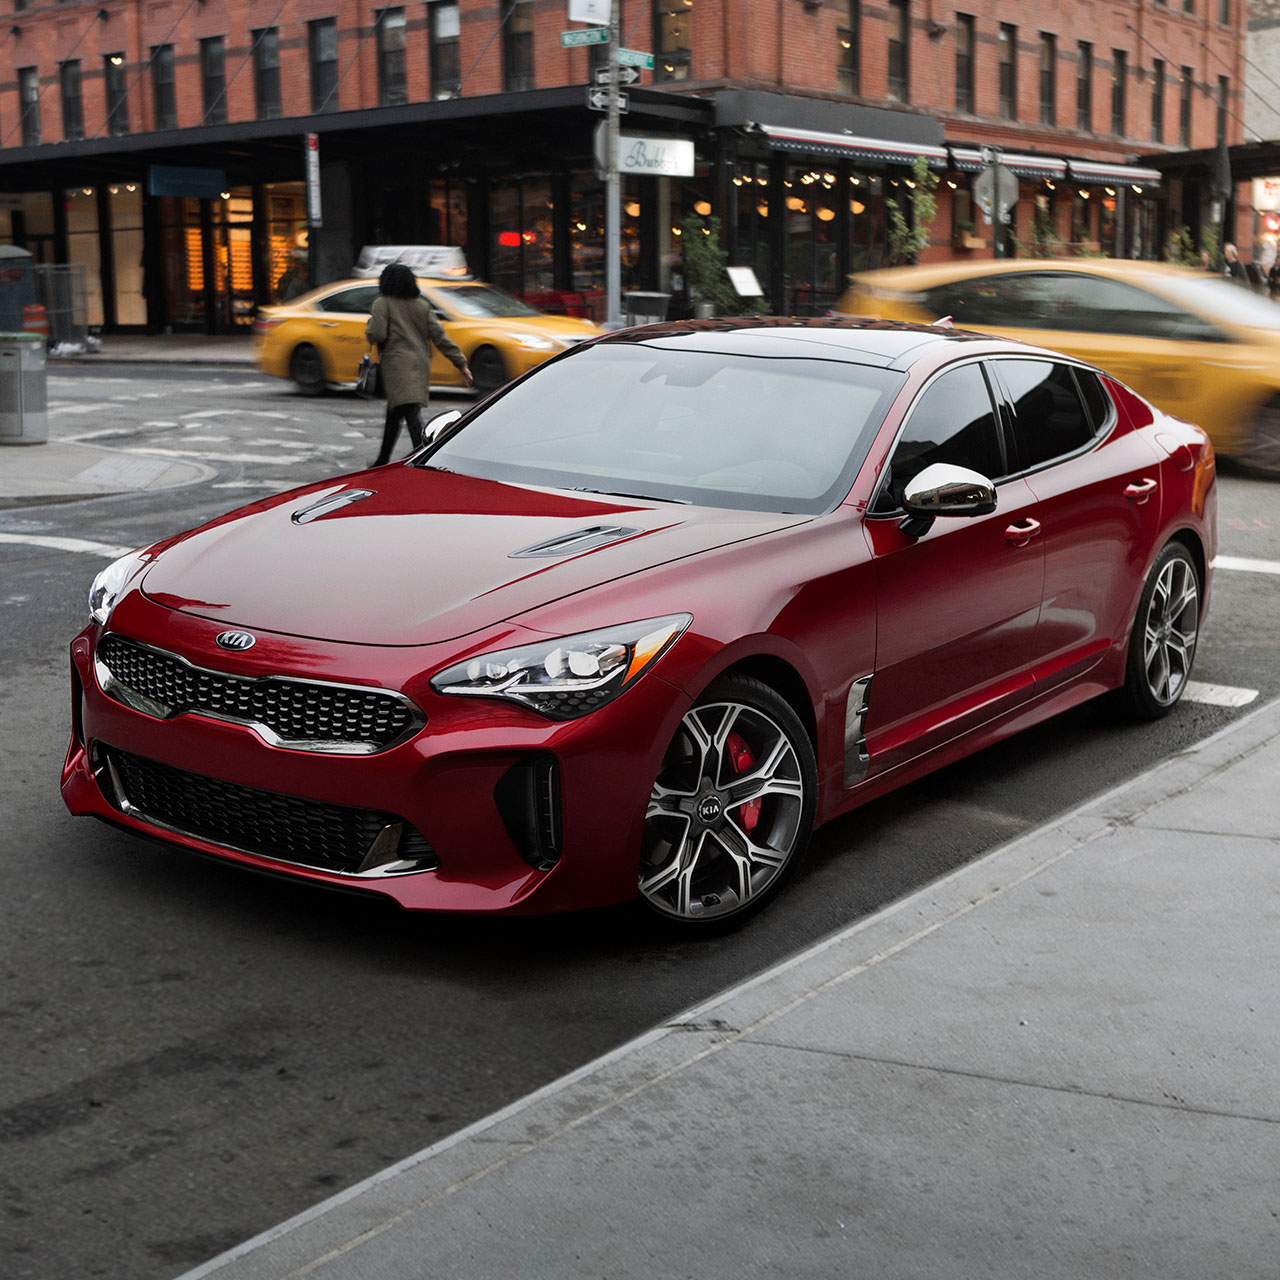 2018 Kia Stinger Leasing in North Olmsted, OH